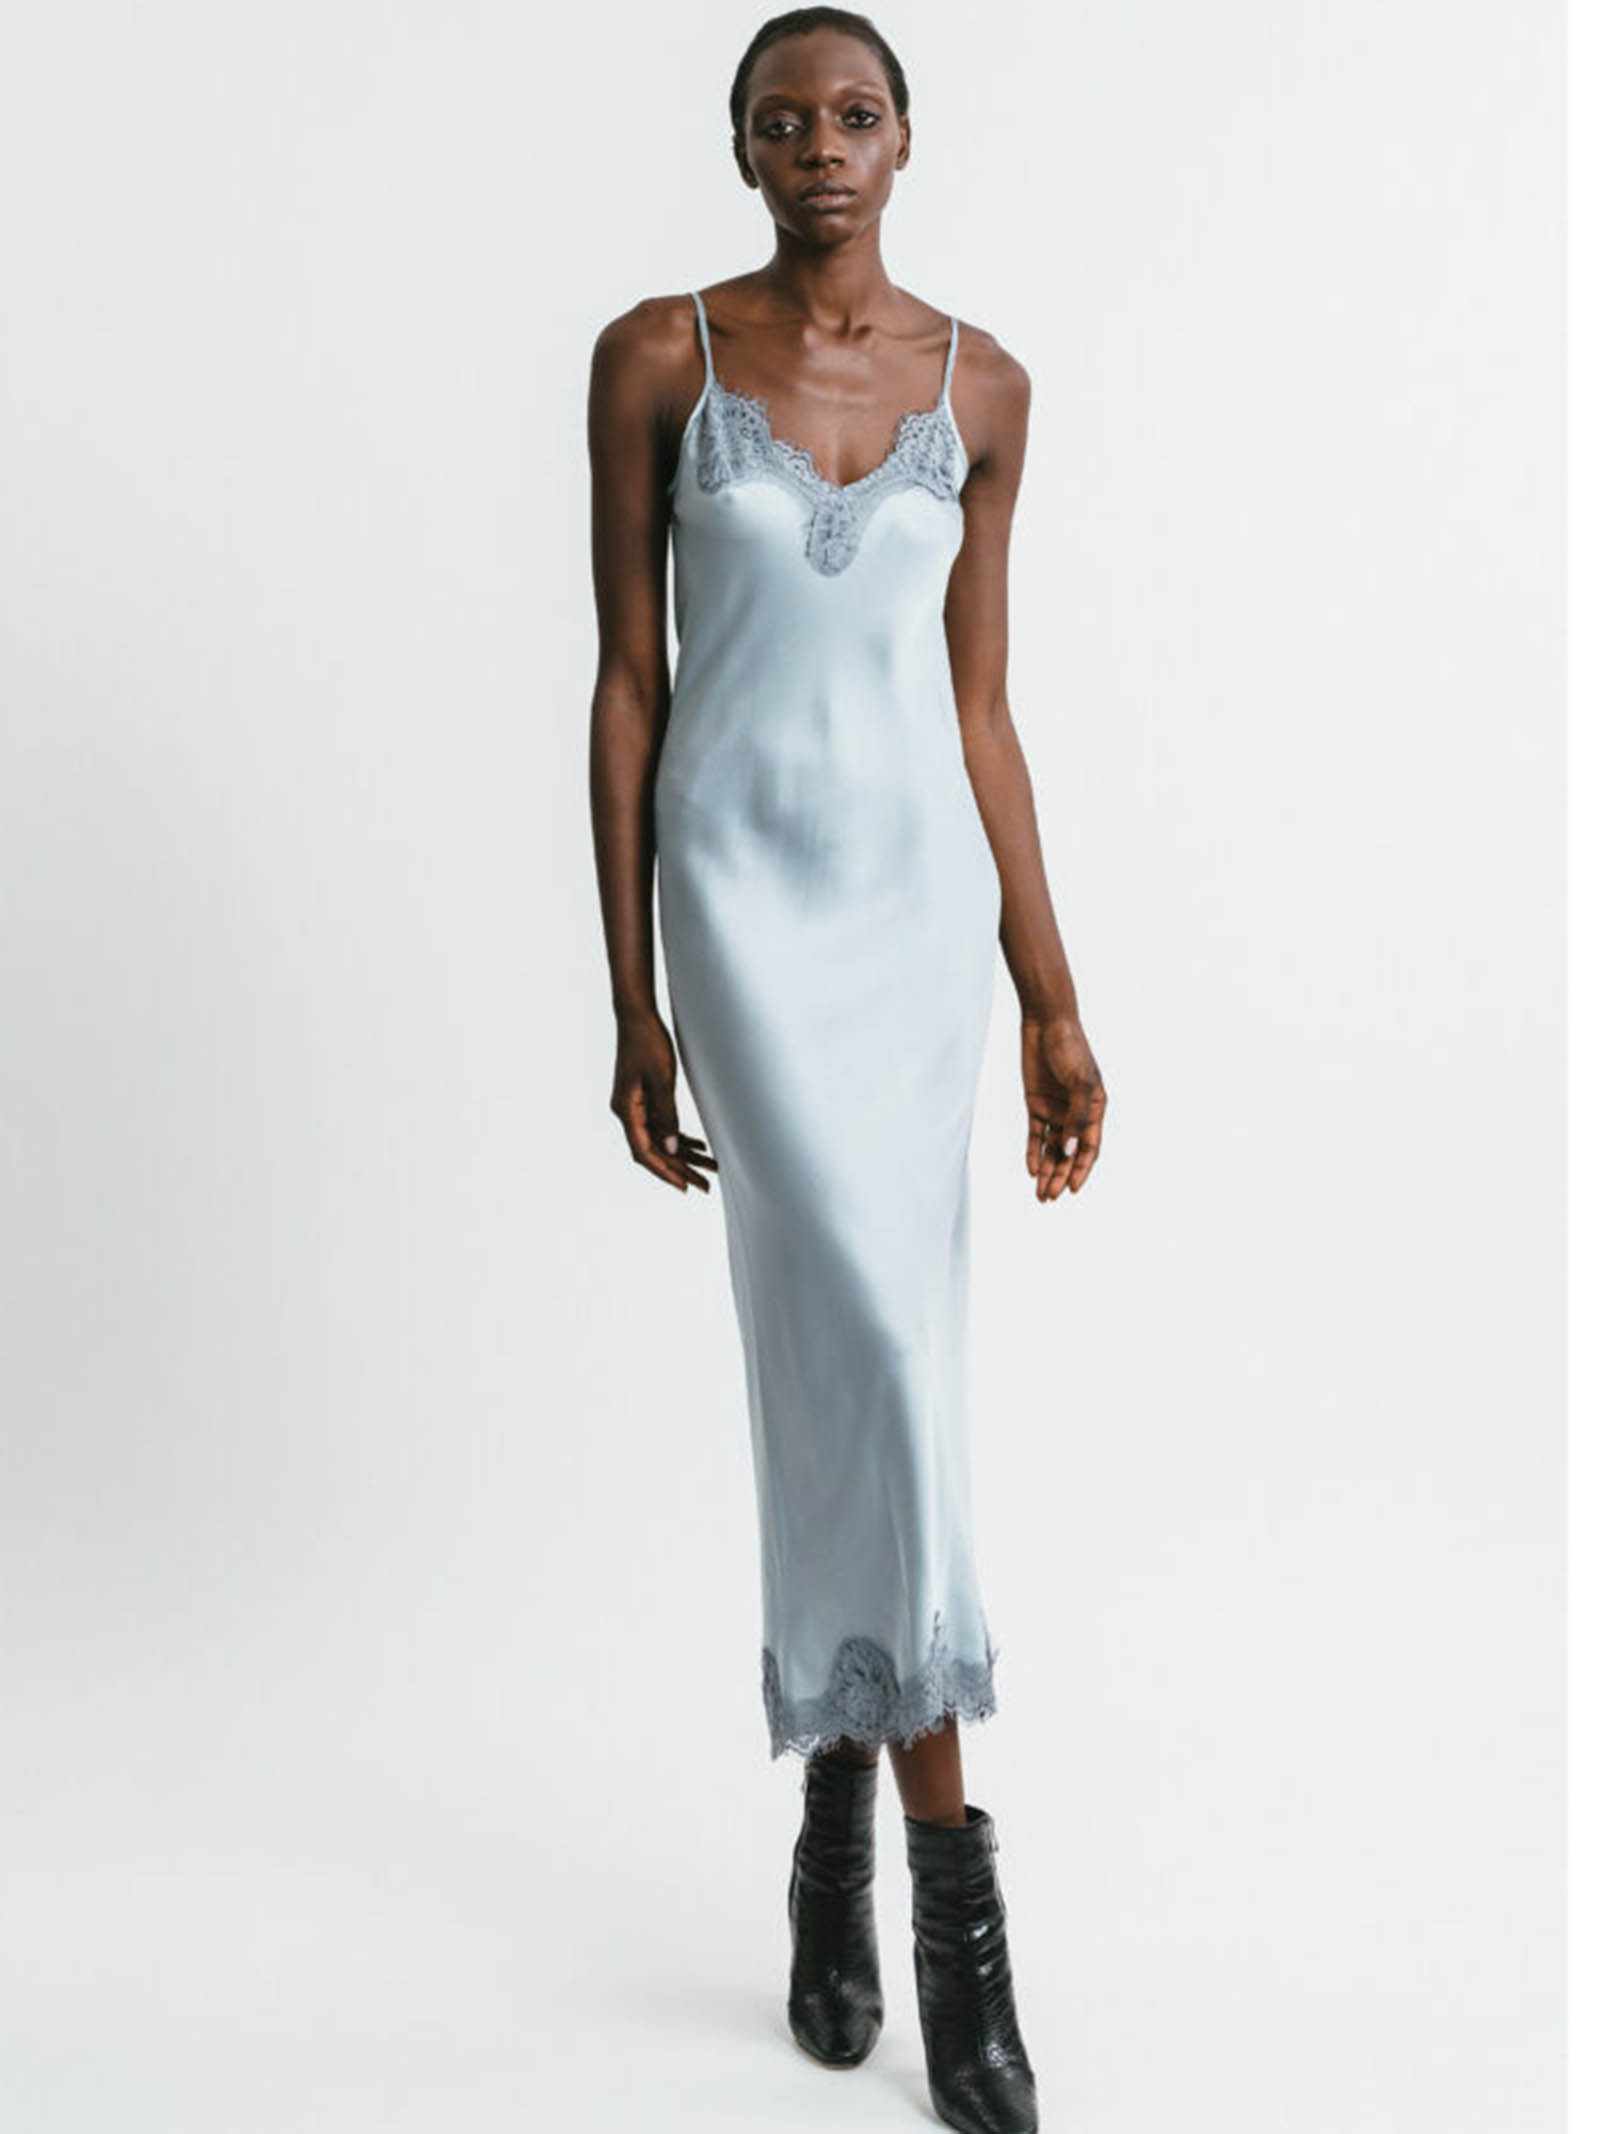 Women's Clothing Long Slip Dress in Silver Chenille with Lace Neckline and Shoulder Straps Pink Memories   Dresses   1115525